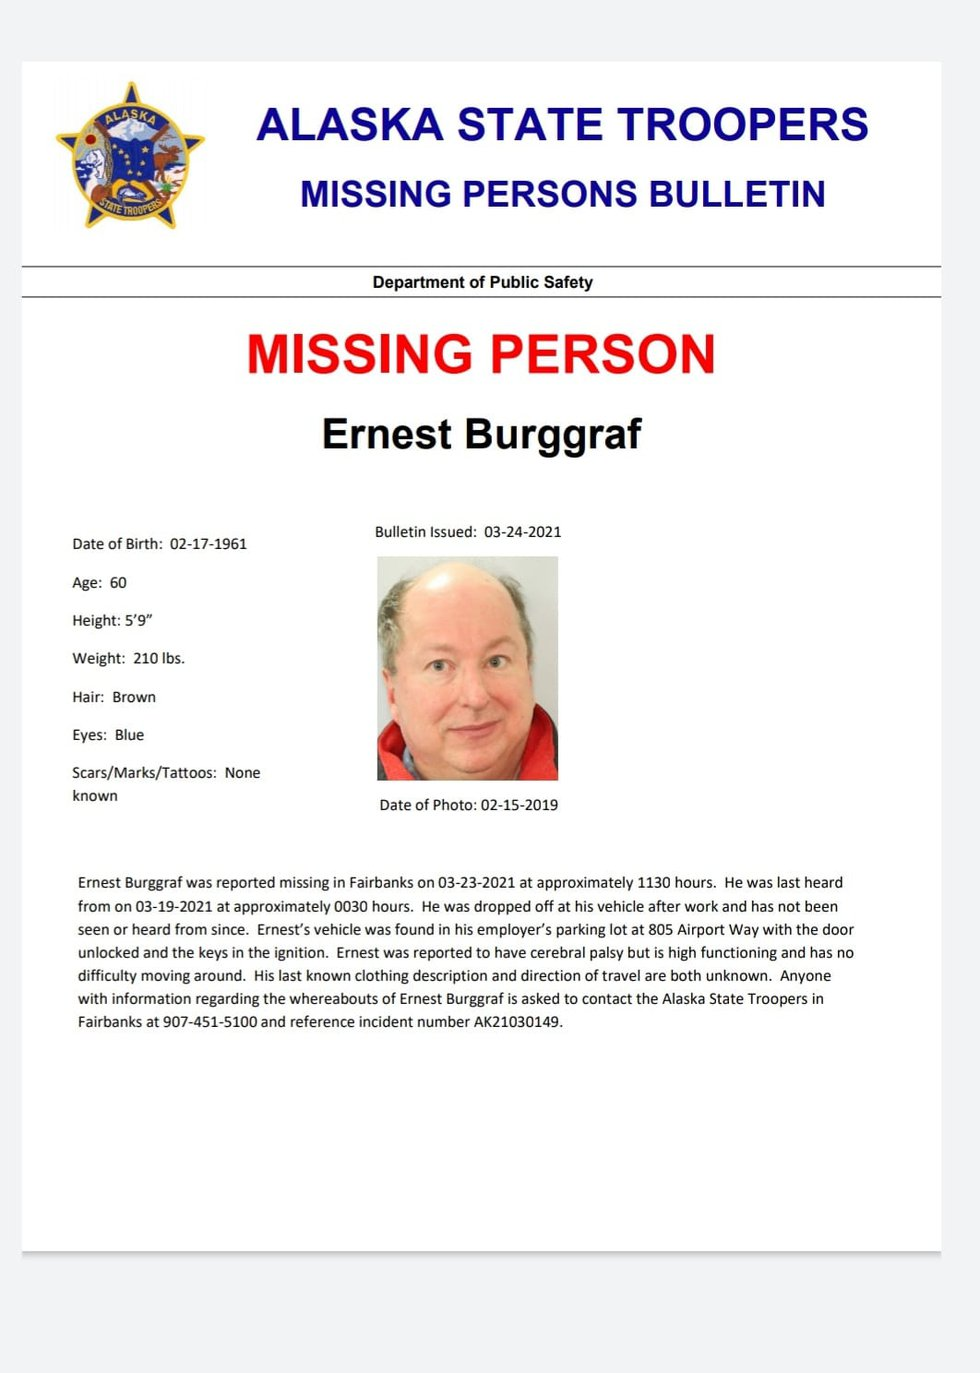 Ernest Berggraf went missing March 19th, 2021. Family believes he may be wearing a dark parka...